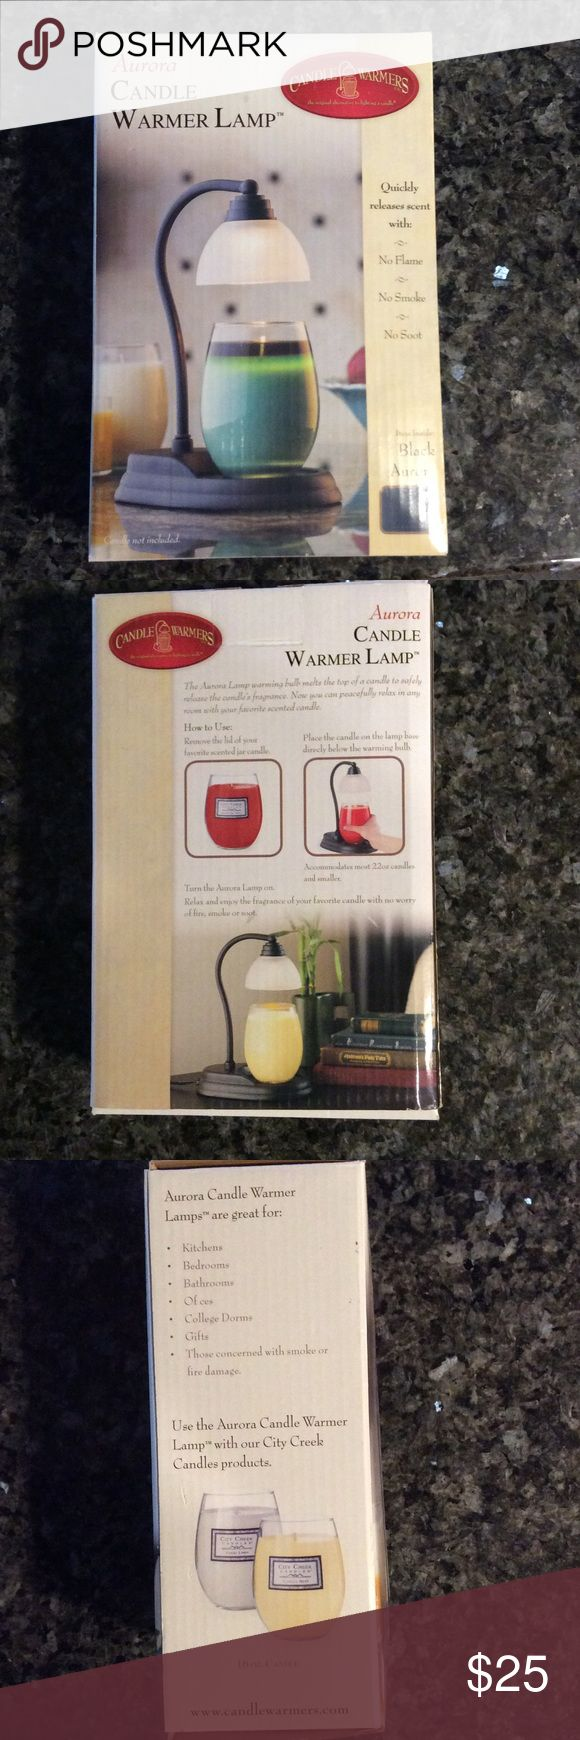 Aurora Candle Warmer Lamp - New in Box NEW in BOX no flame, smoke or soot!  Enjoy the aroma of your favorite candle without worry!  Accommodates most 22oz and smaller jar candles.  Safely melts the top of a candle to release the fragrance. Candle Warmers Other